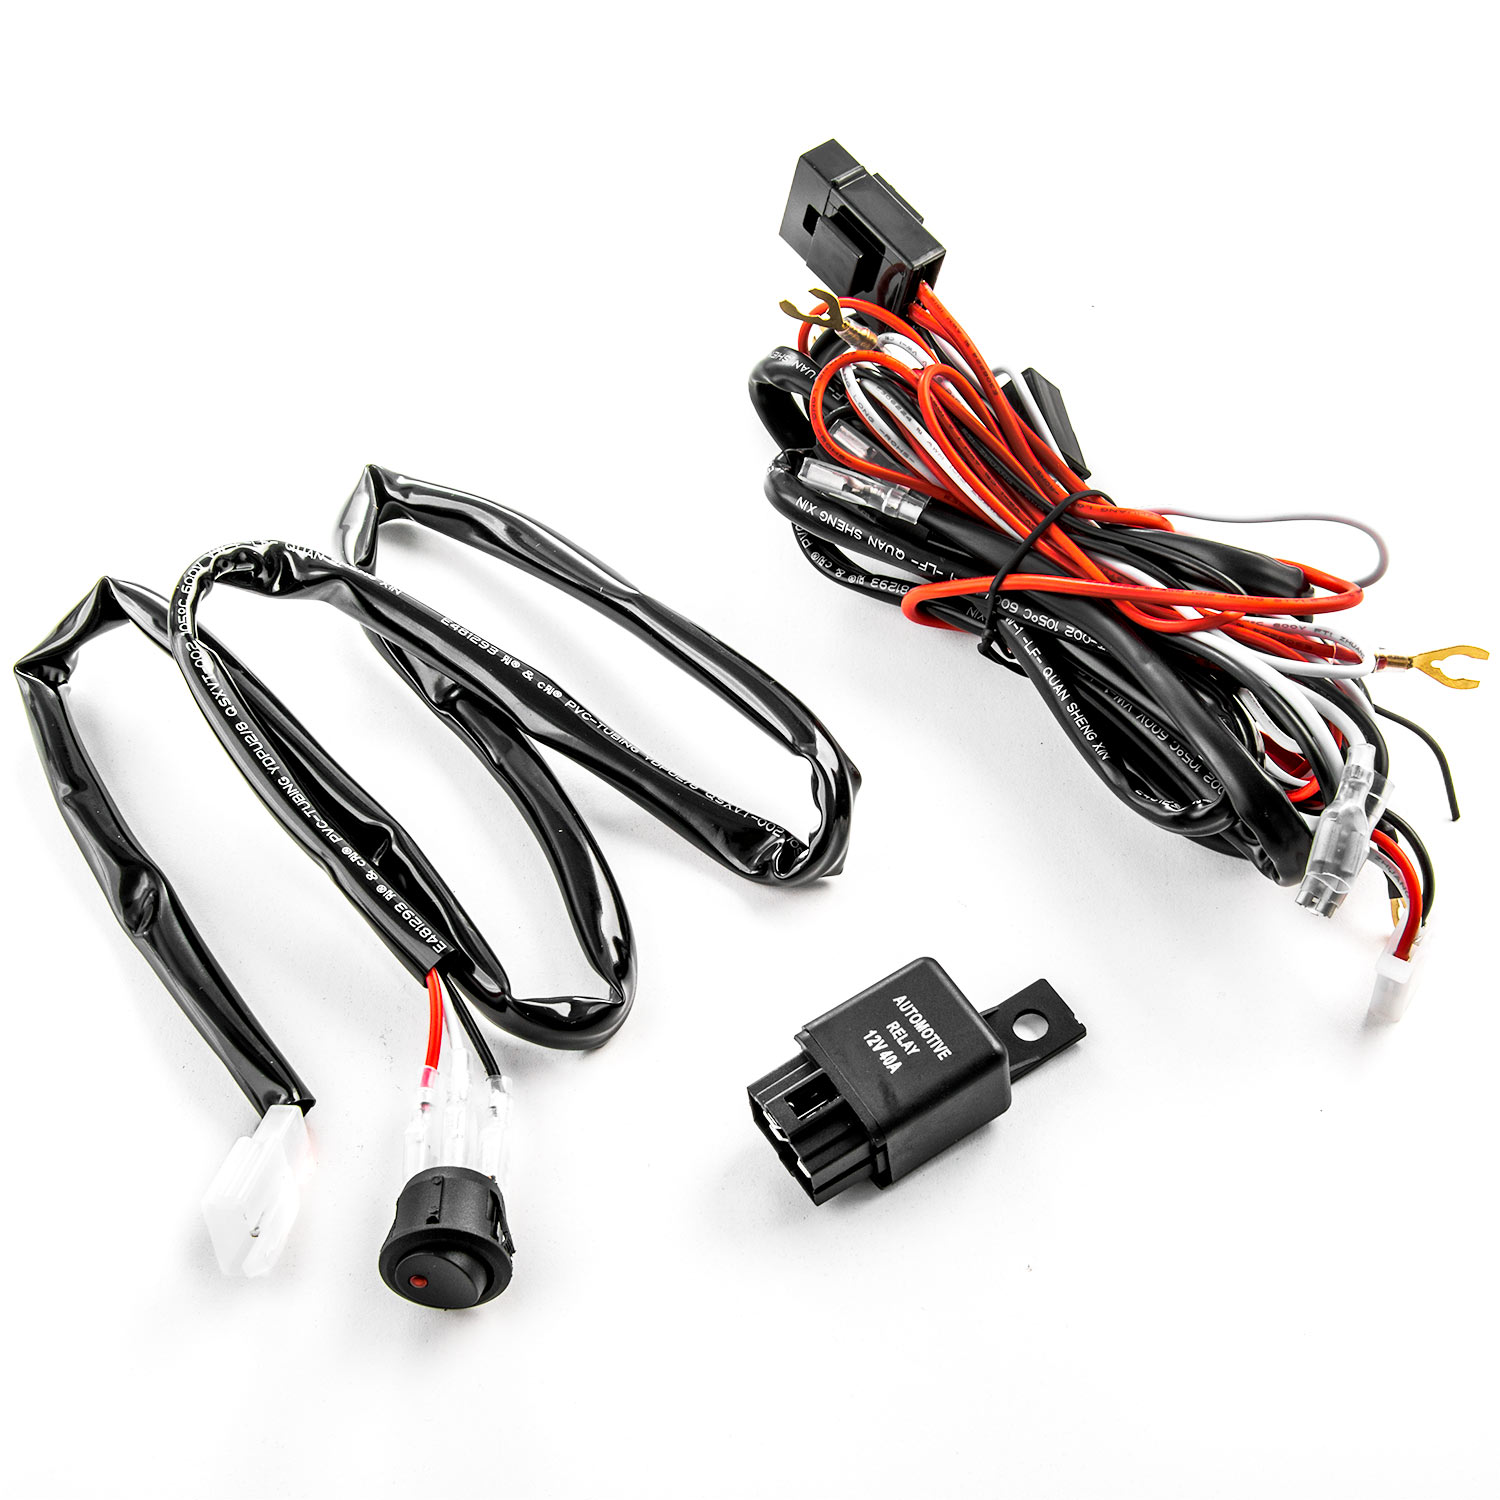 wiring harness kit for led lights 200w 12v 40a fuse relay on off rh walmart ca